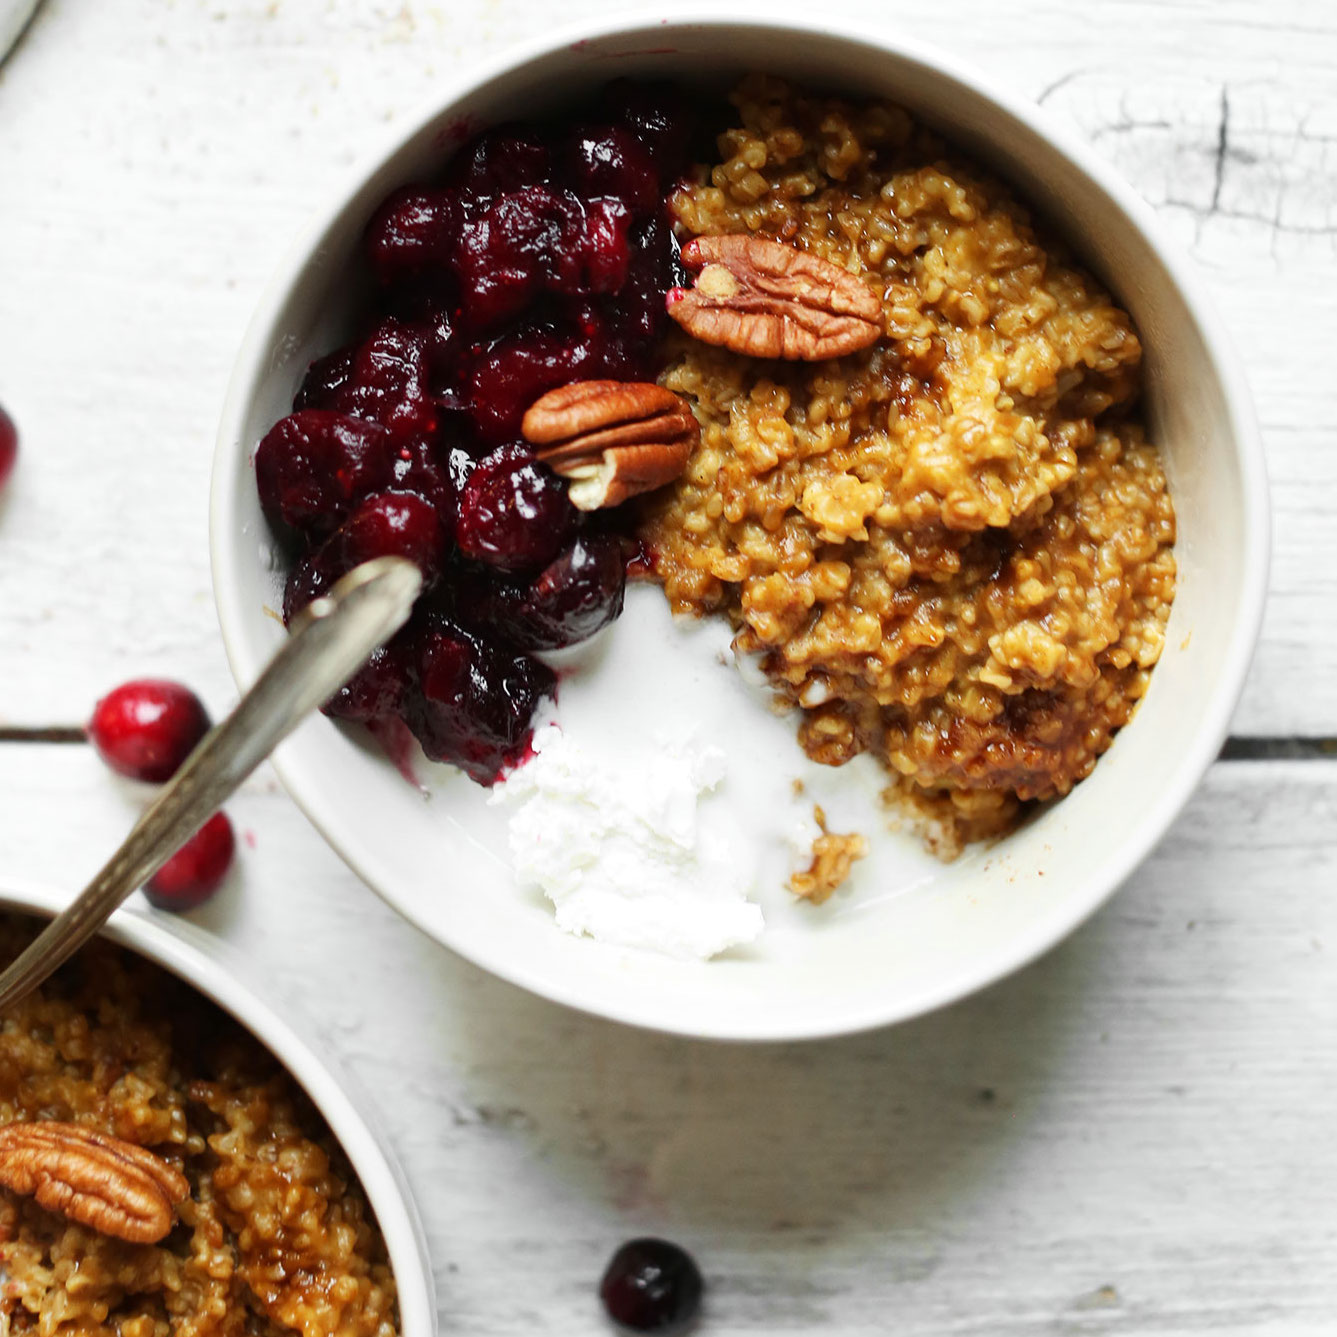 Bowl of Cranberry Pumpkin Oats with Coconut Whipped Cream